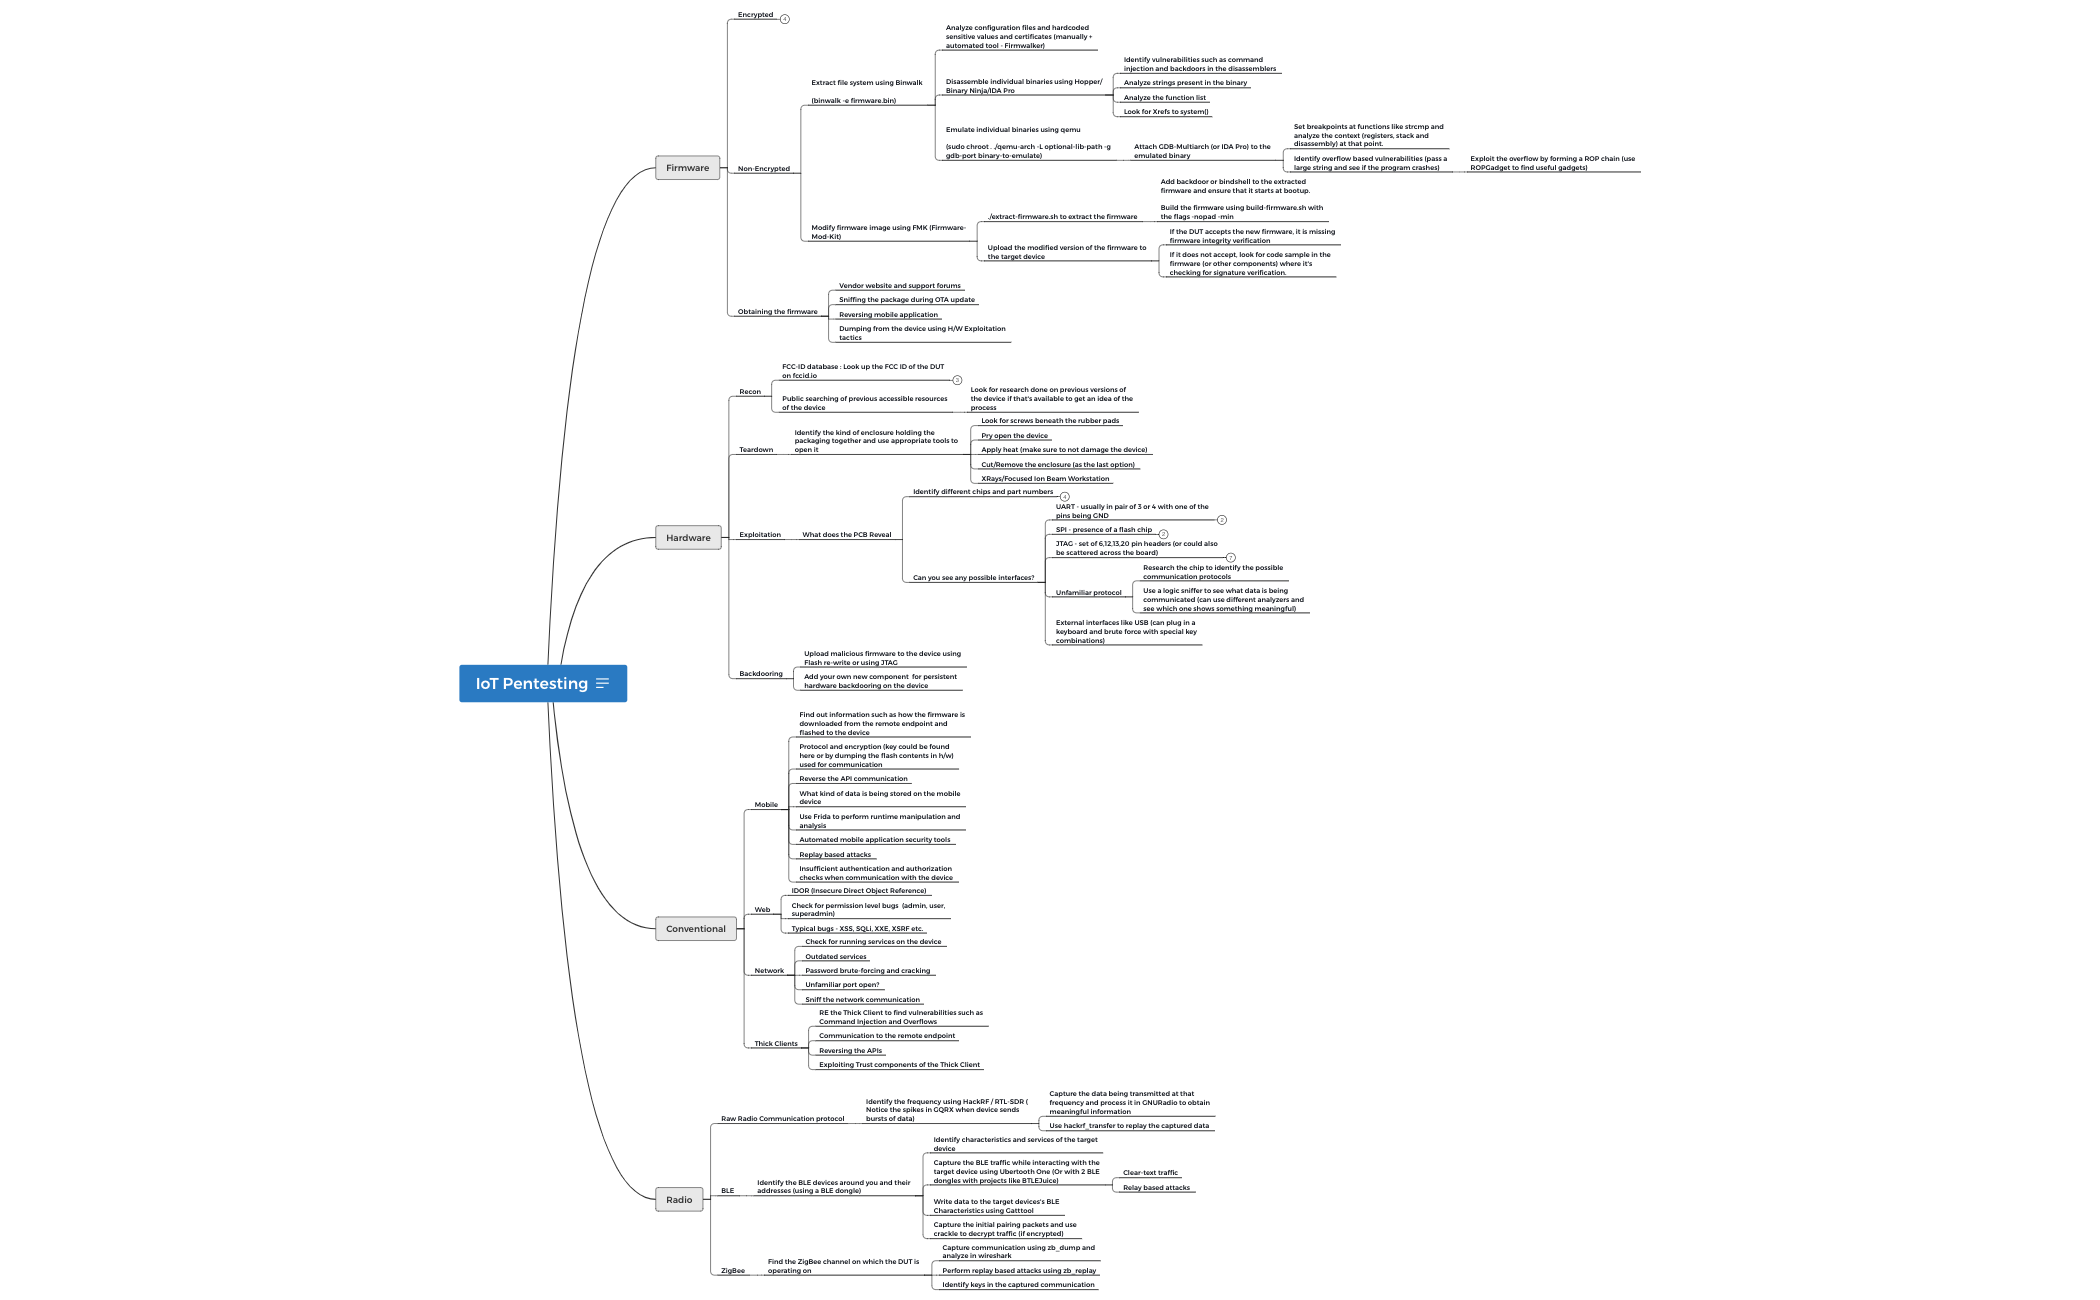 IoT Pentesting MindMap By Attify - XMind - Mind Mapping Software